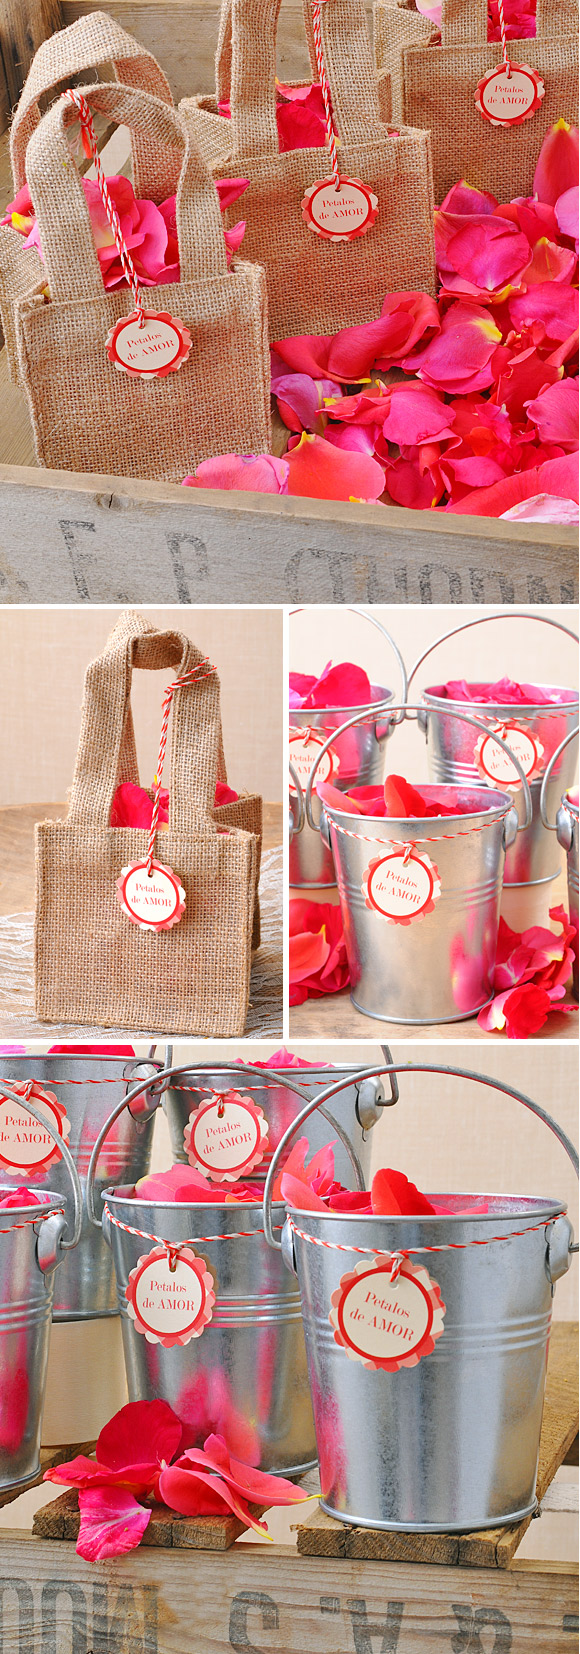 Diy de bodas ideas diy - Ideas para colocar los bolsos ...